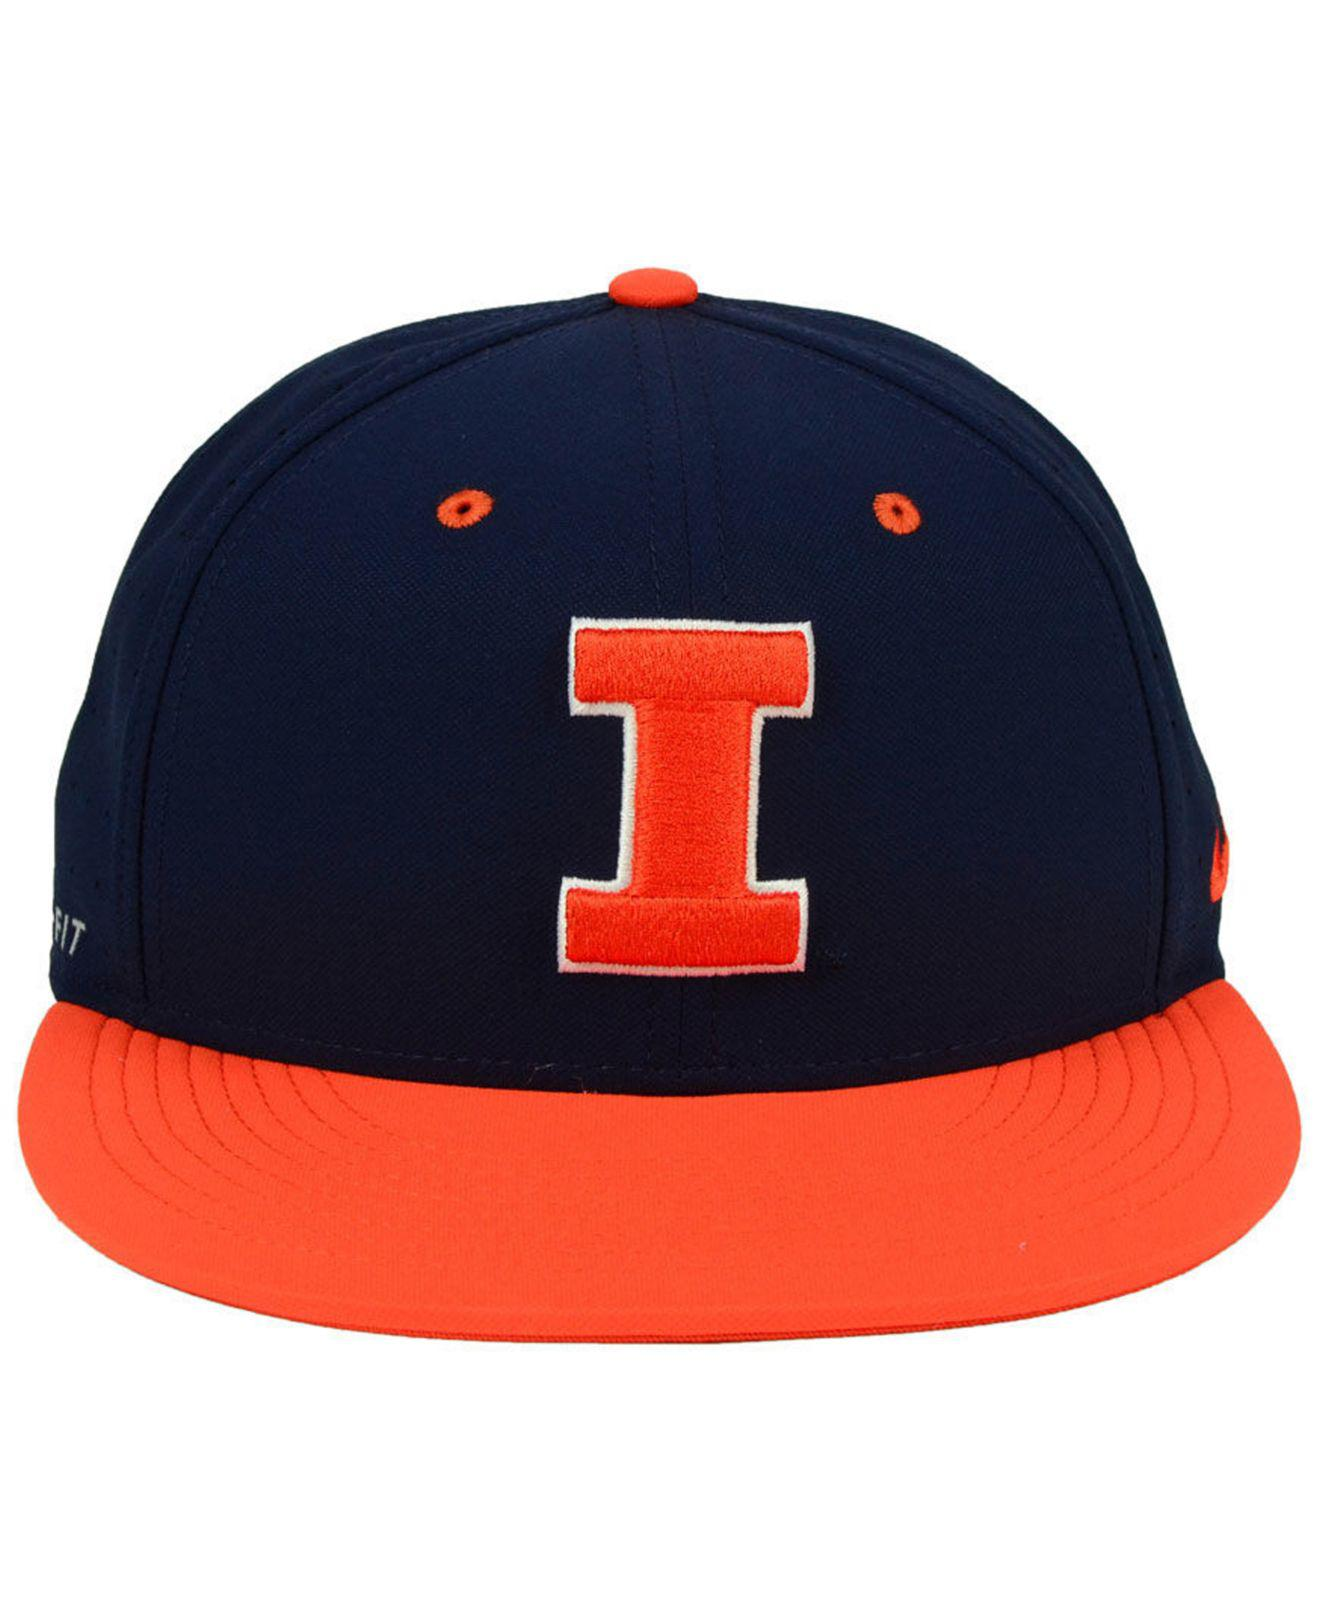 quality design e345a 4c264 ... uk lyst nike illinois fighting illini aerobill true fitted baseball cap  in blue for men 9d27b